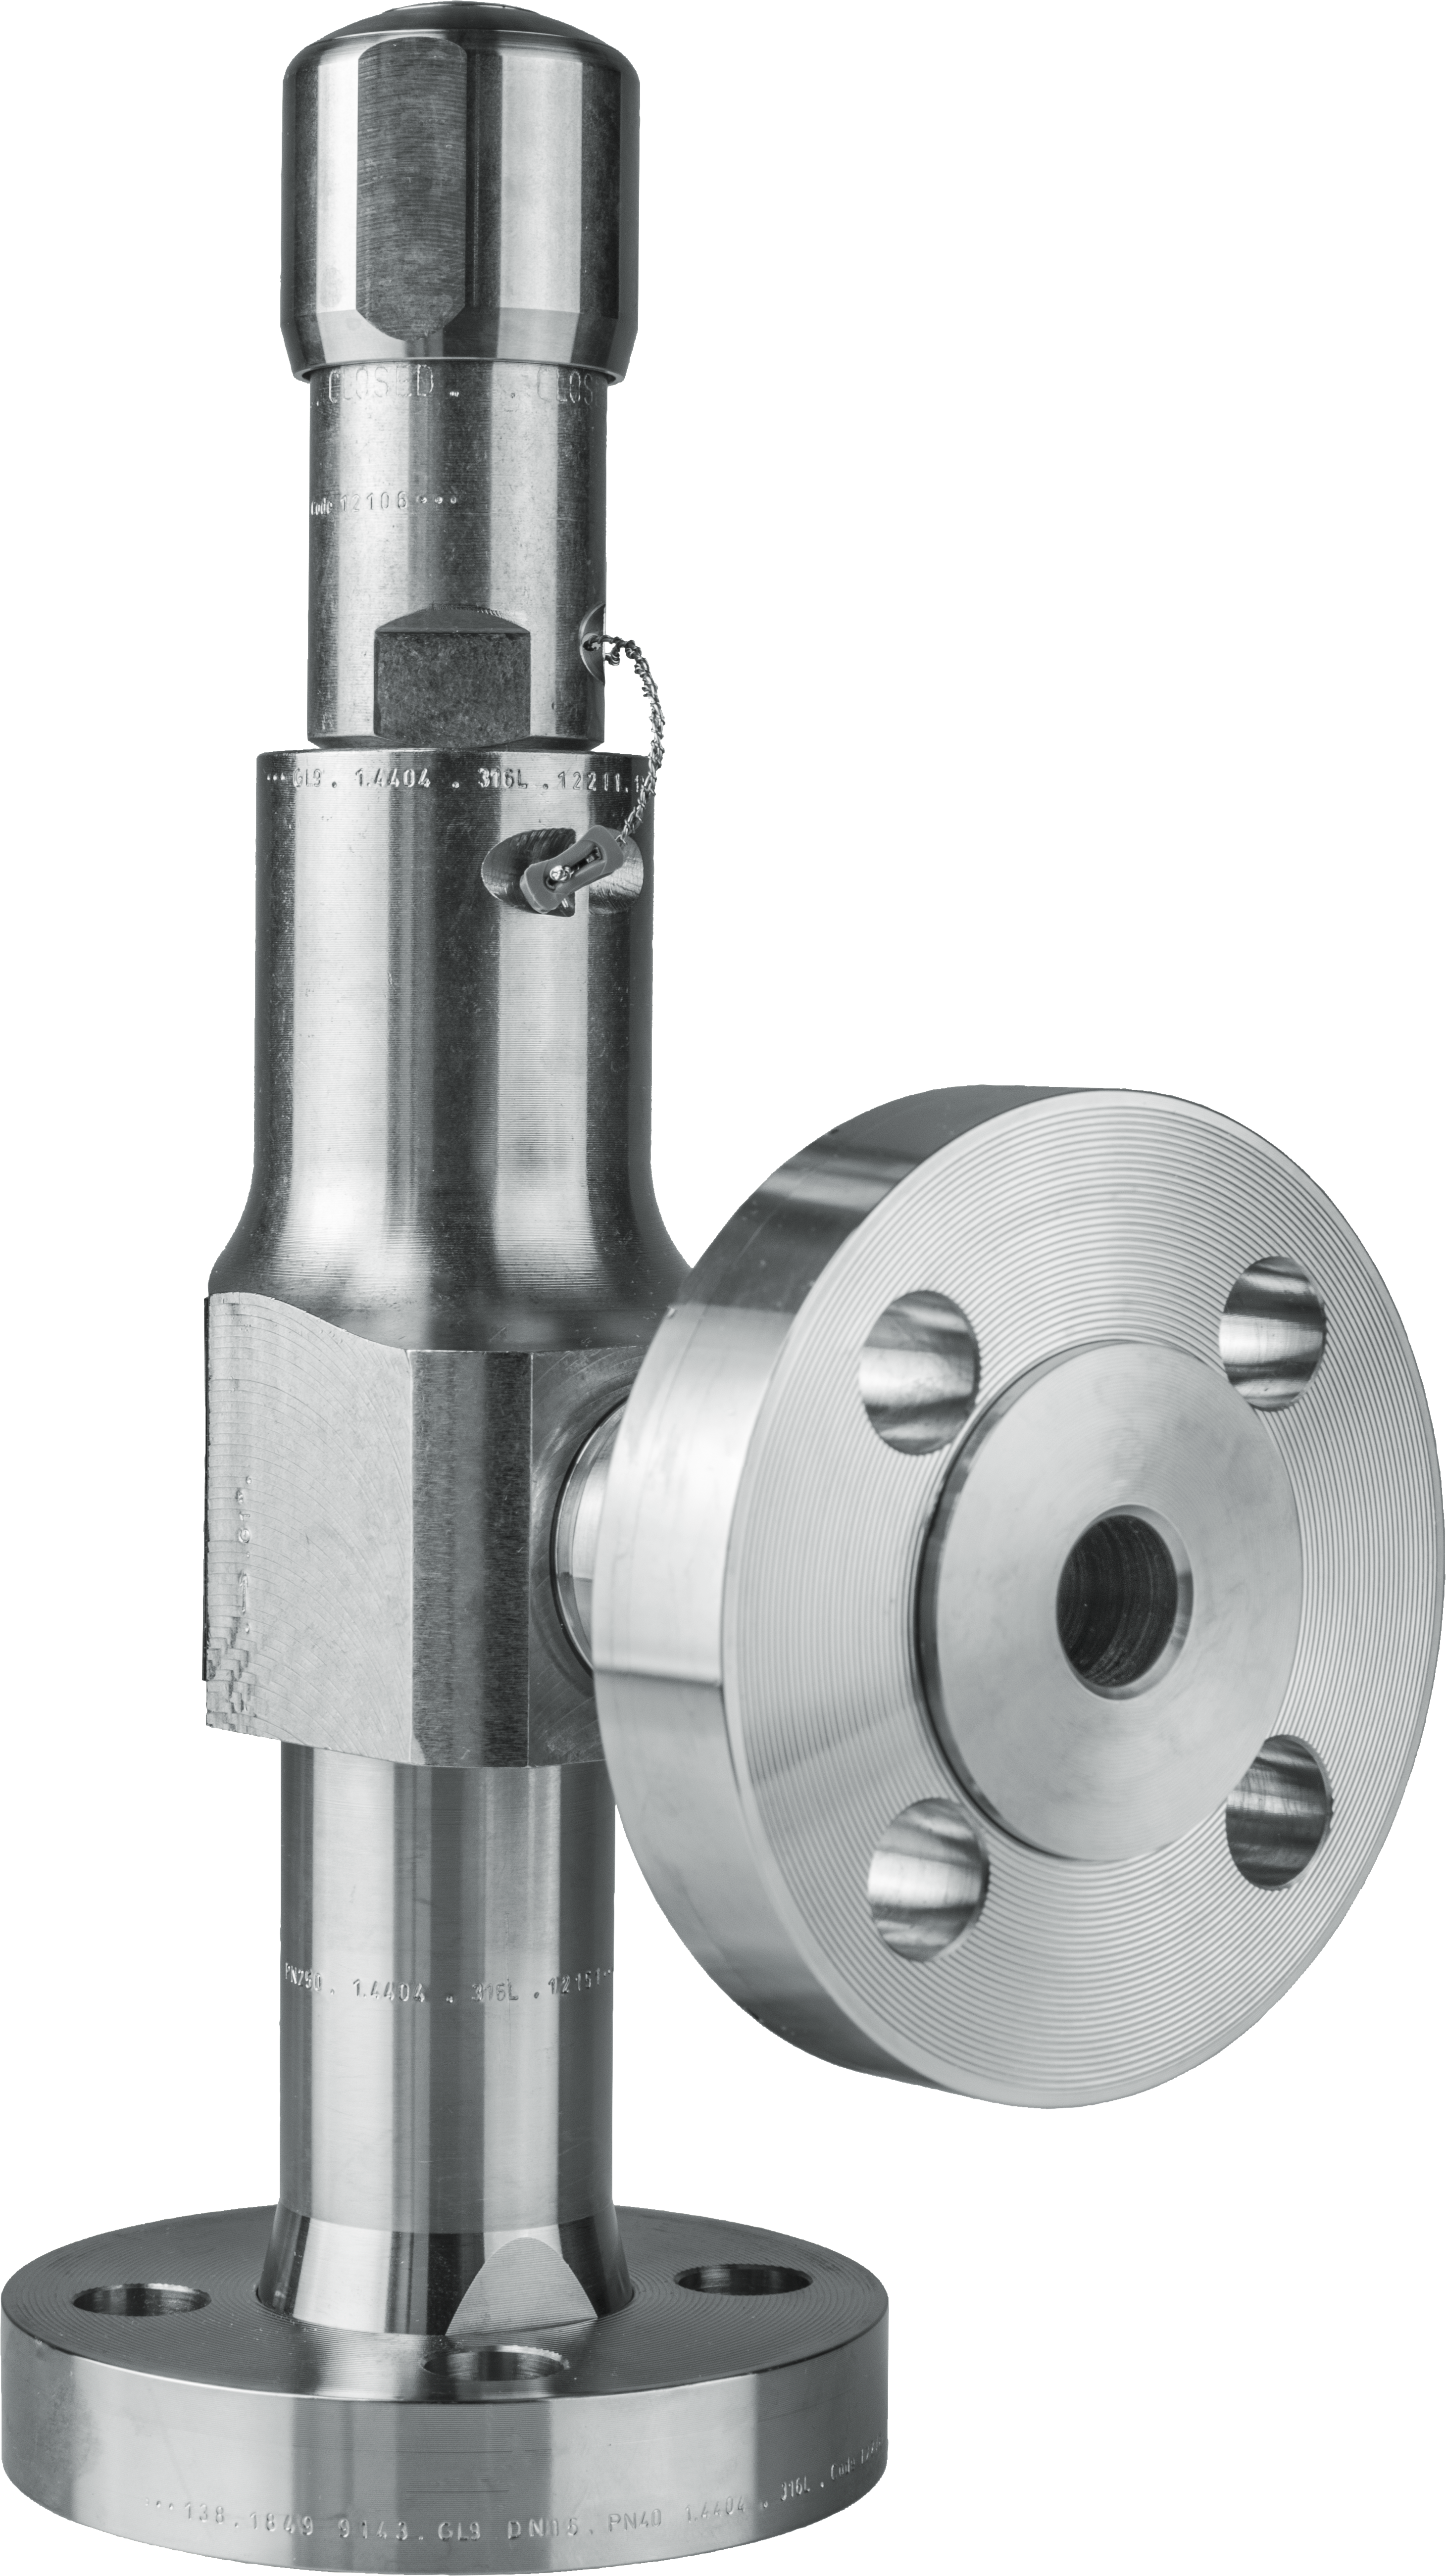 LESER Compact Performance Safety Valve Type 437